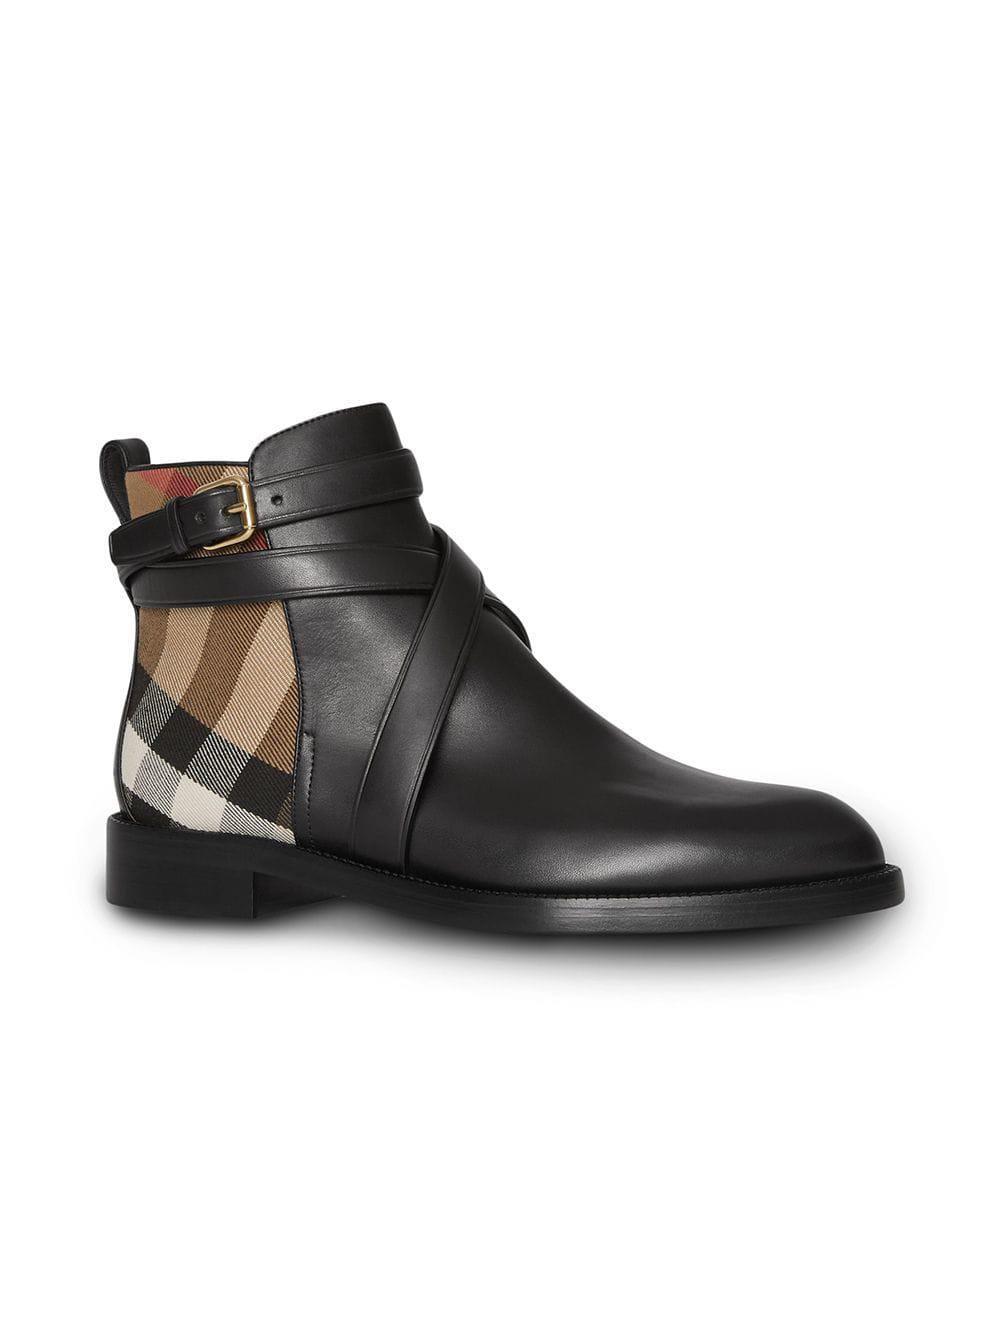 d16dea472e1 Lyst - Burberry House Check And Leather Ankle Boots in Black - Save 24%